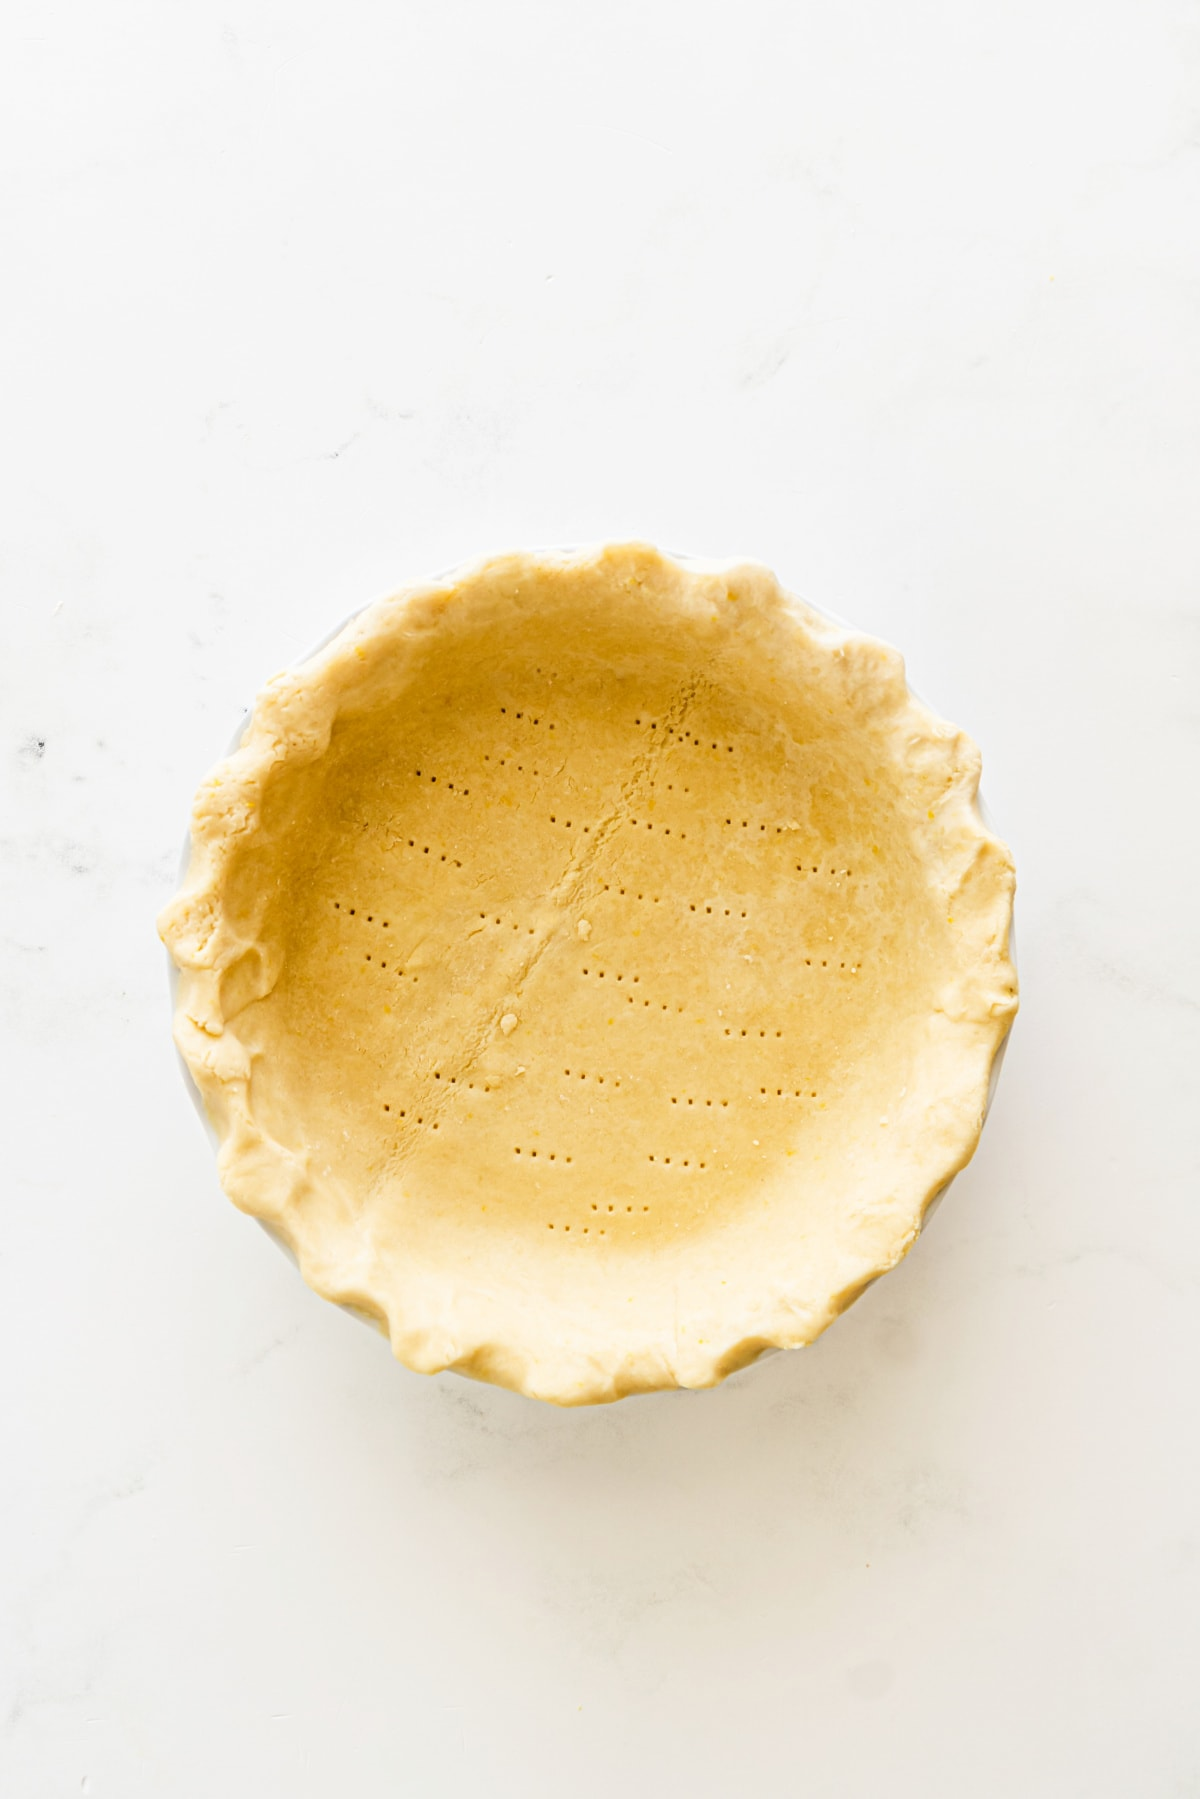 Pie crust vented with a fork